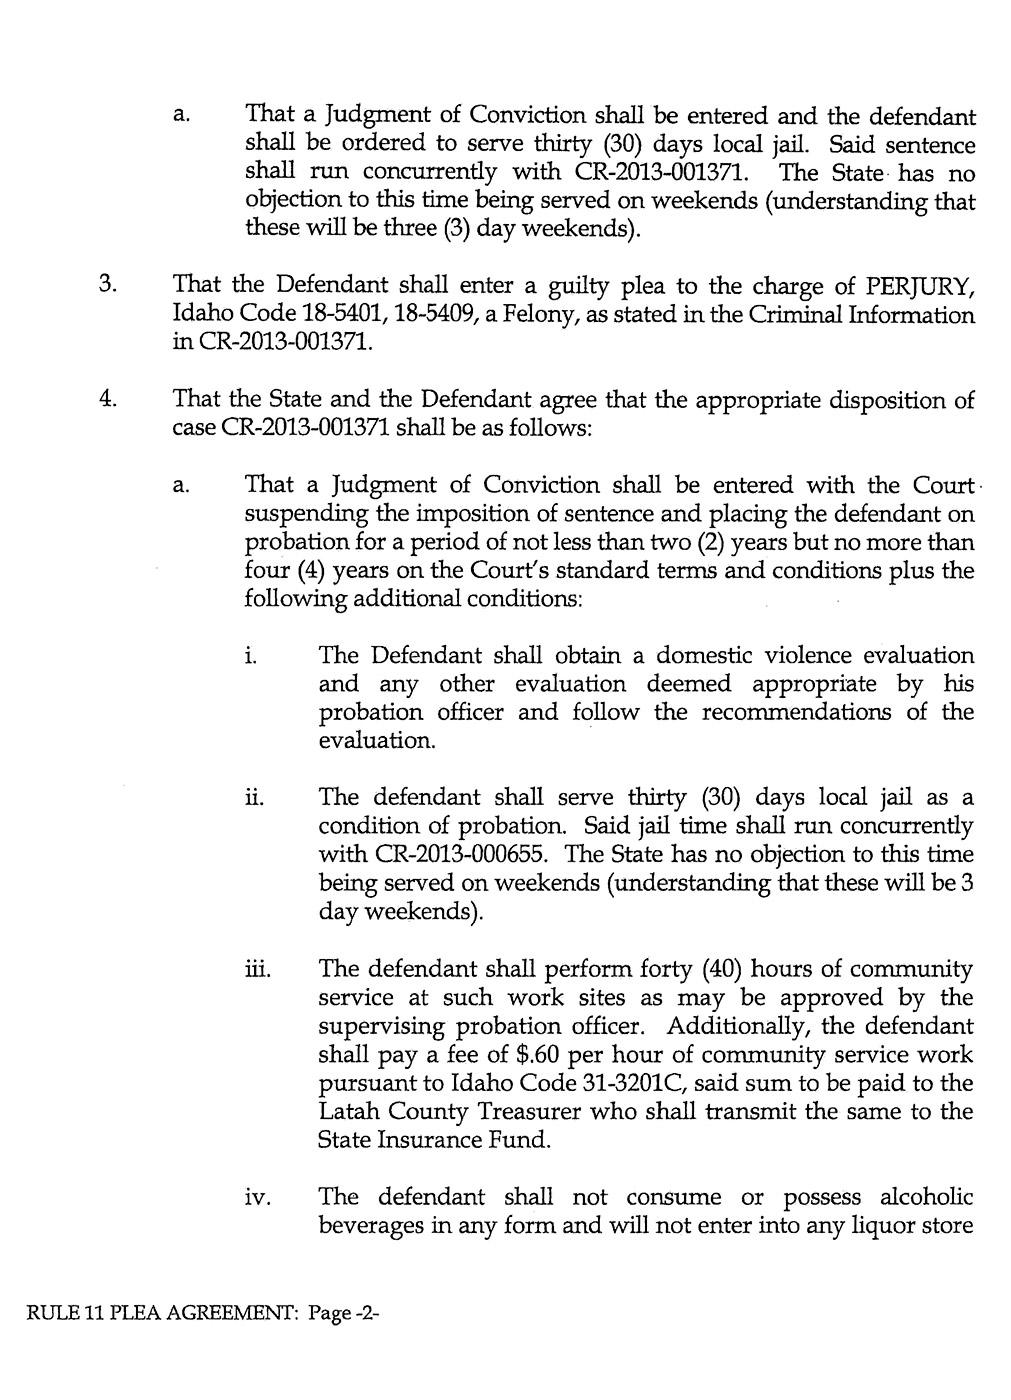 Jamin Wight: Rule 11 Plea Agreement page 2